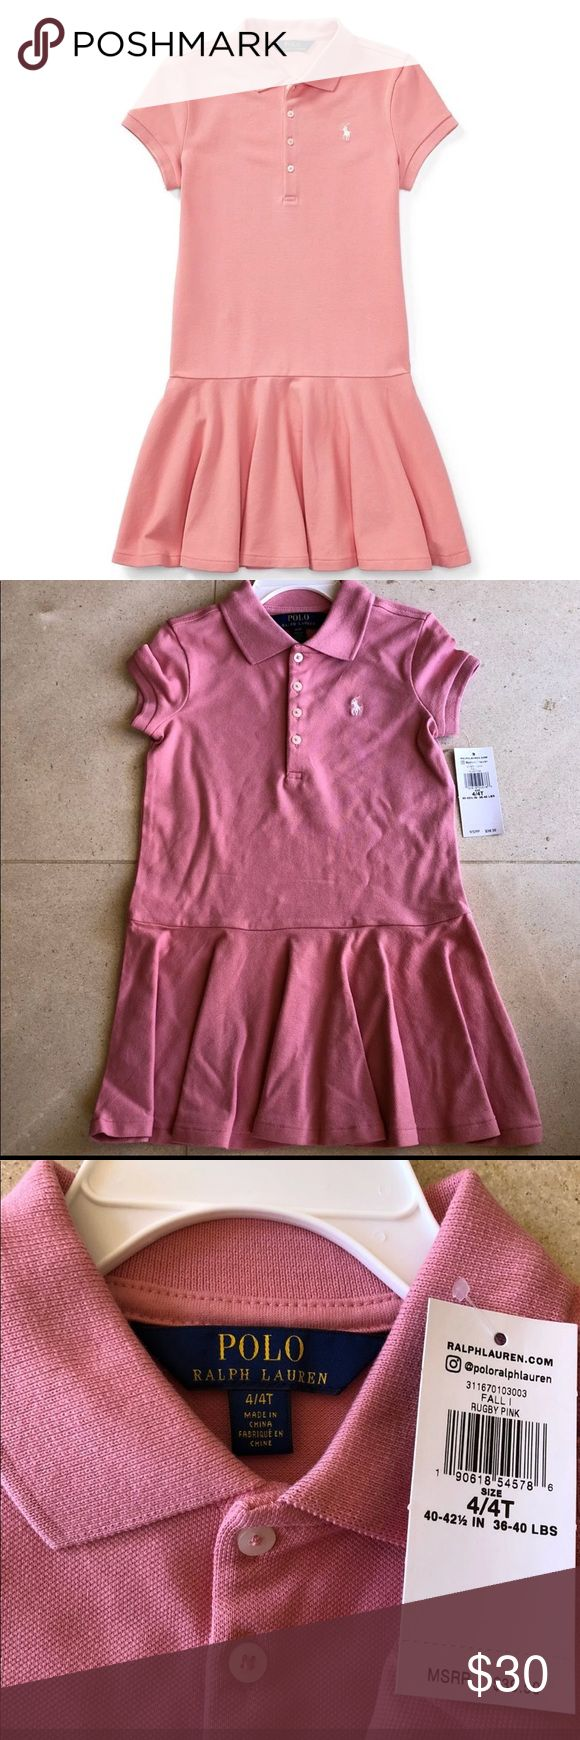 Polo Ralph Lauren Girl's Mesh Polo Dress 4/4T Polo Ralph Lauren Girl's Mesh Short-Sleeve Polo Dress, in rugby pink, 4/4T ❤️  NOT from factory outlet store. It's from Nordstrom!  Brand new. so cute!  Made from stretch cotton and with a full skirt, this version of the Polo Ralph Lauren dress is comfortable enough for every day and polished enough for picnics or parties.  Cotton / elastane Polo collar Four button placket Short sleeves Ruffled skirt Machine washable Imported * hanger not…